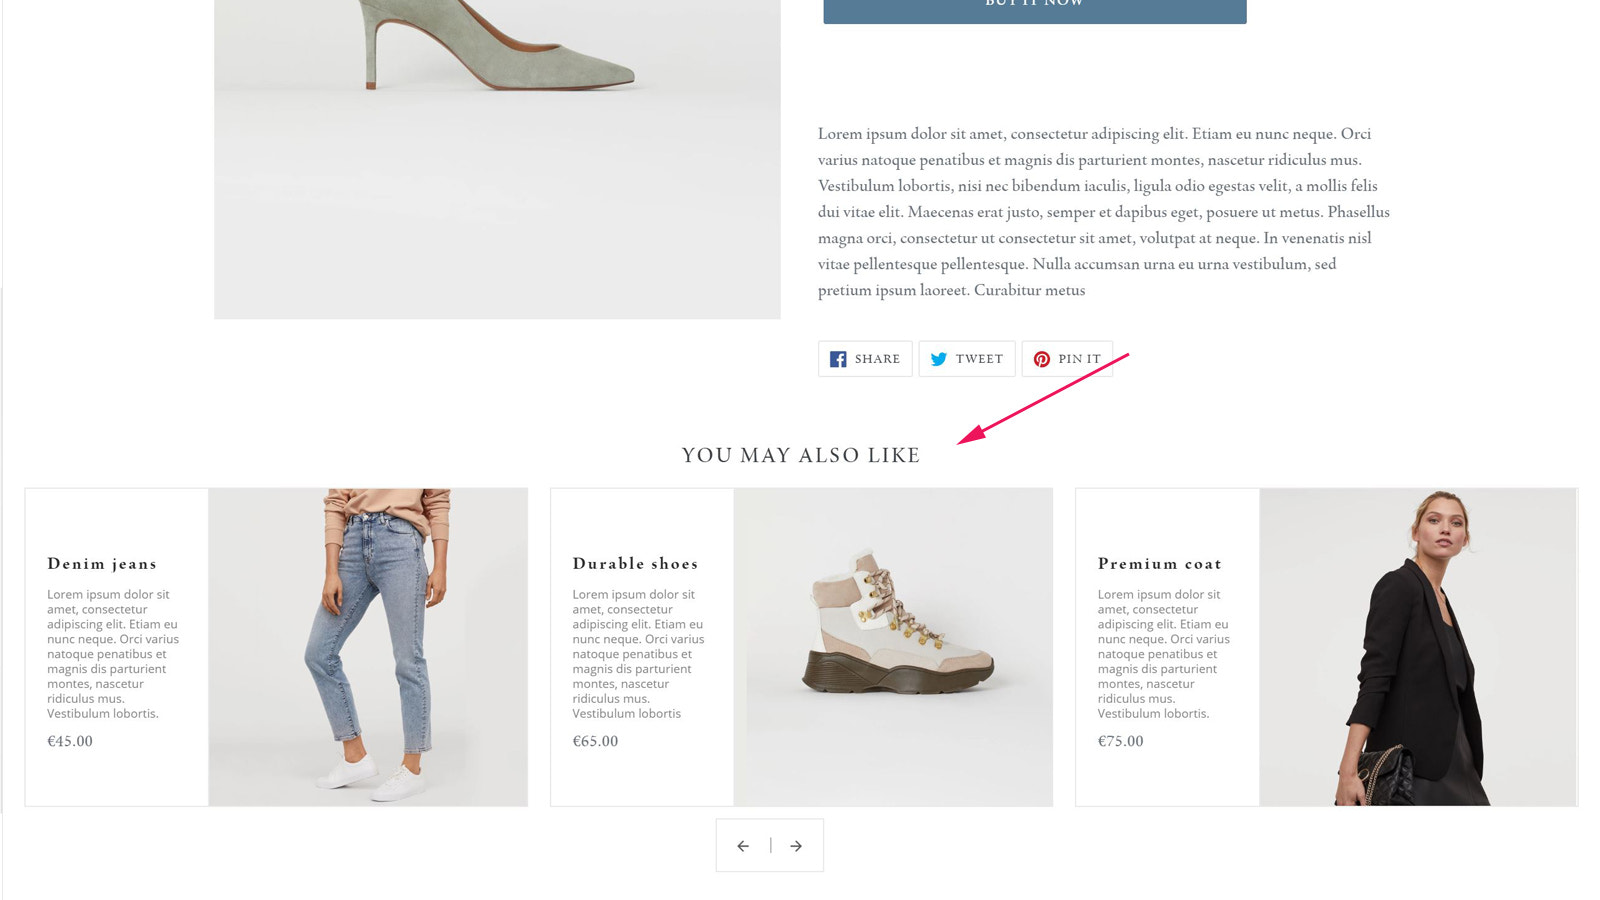 Recommendations with product details